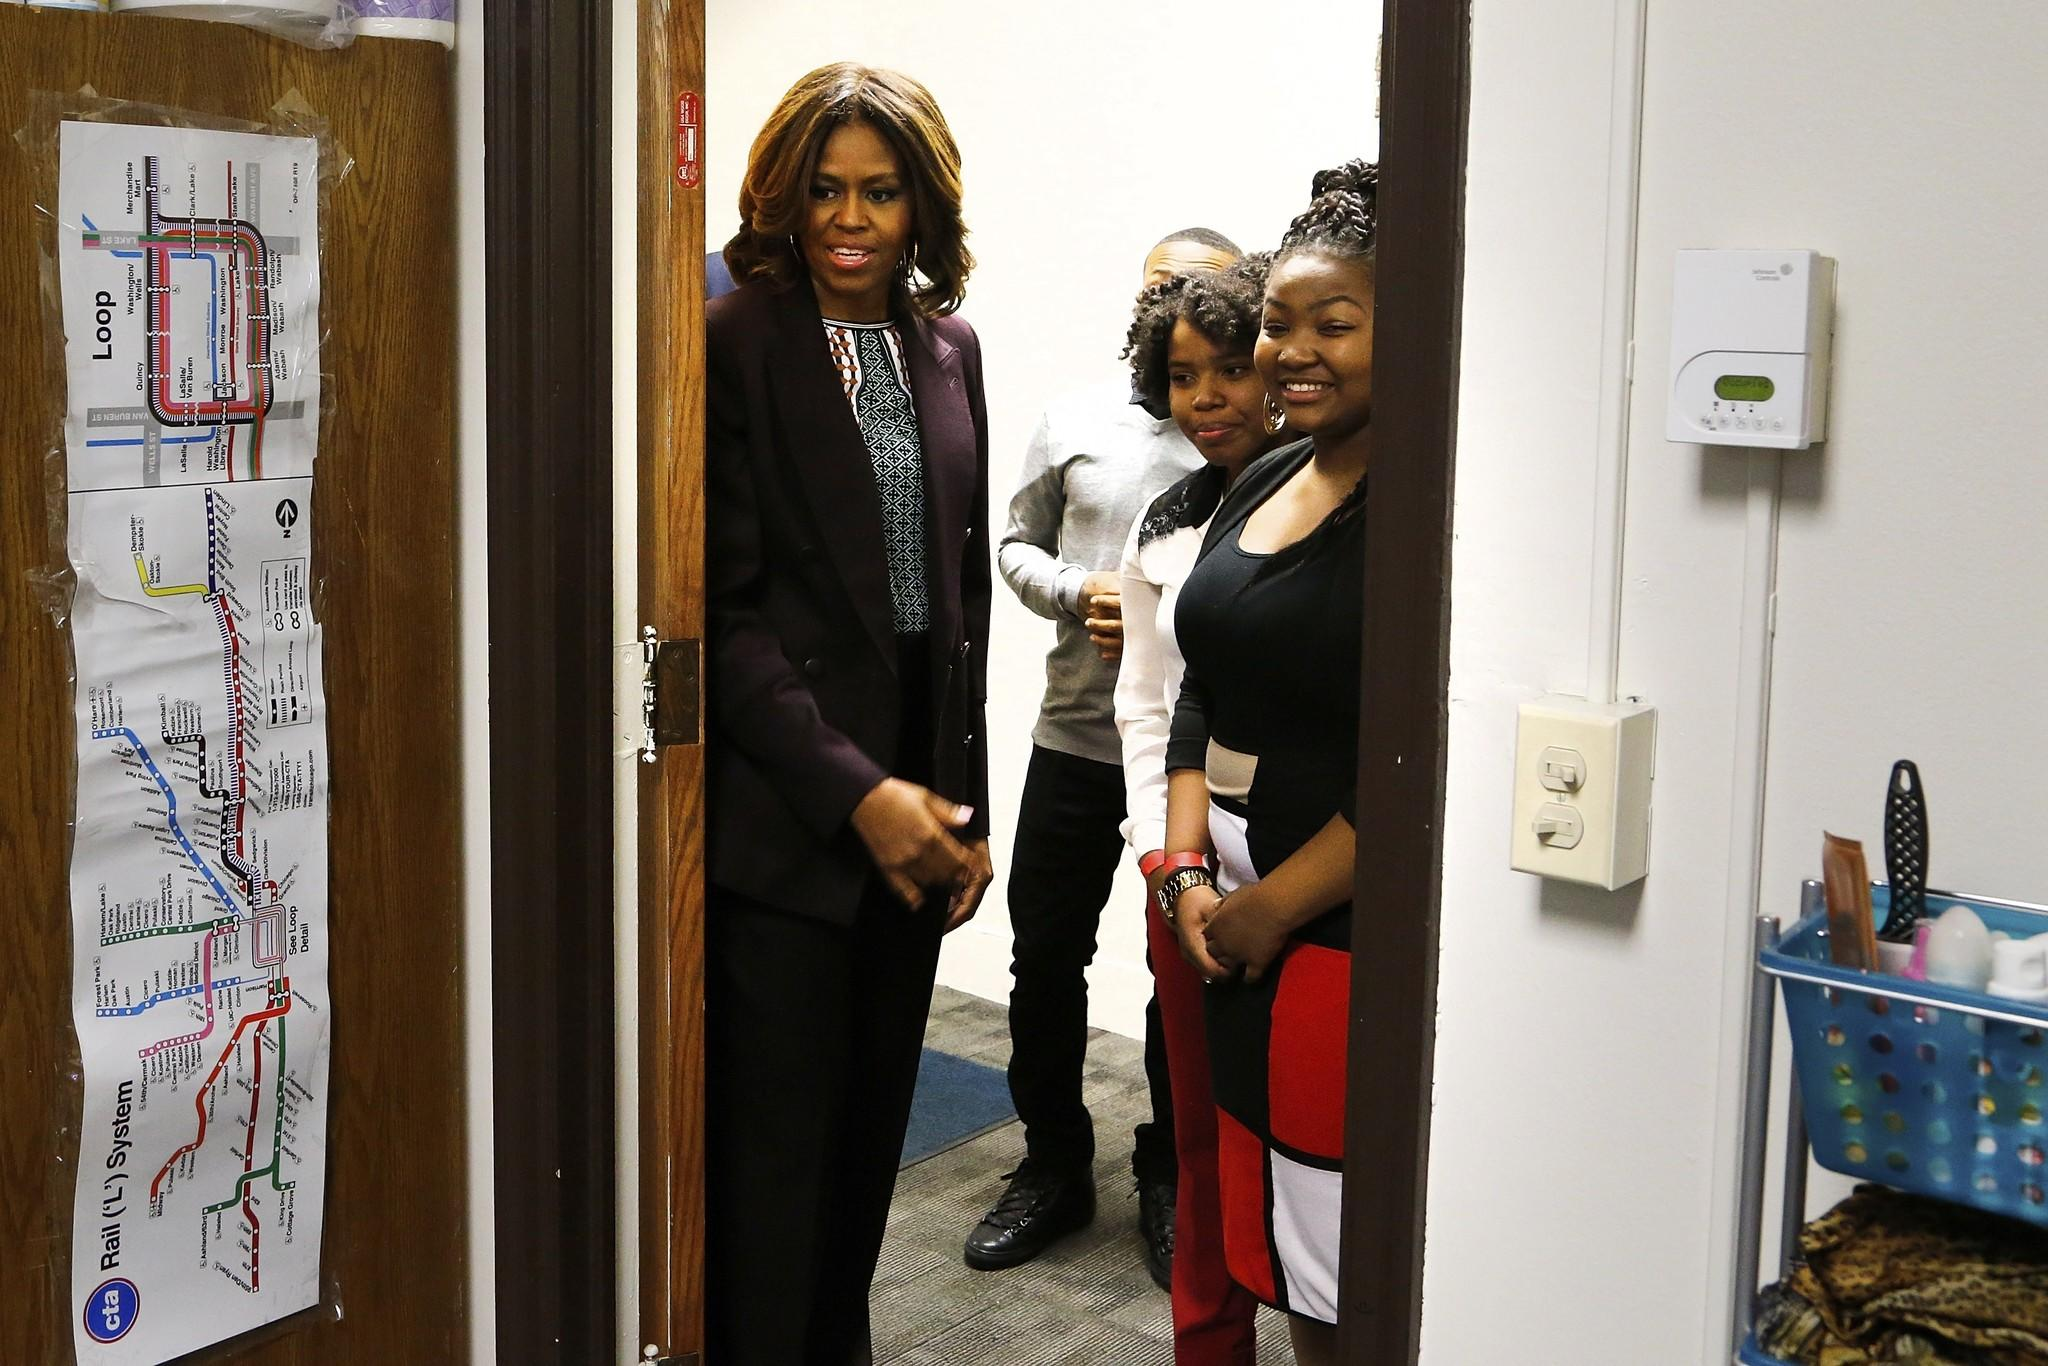 First lady Michelle Obama (left) looks into a dorm room during a campus tour of Howard University with high school students in Washington, D.C. Obama joined the juniors and seniors from Chicago public high schools on the first day of a four-day visit to Howard University called Escape to the Mecca.